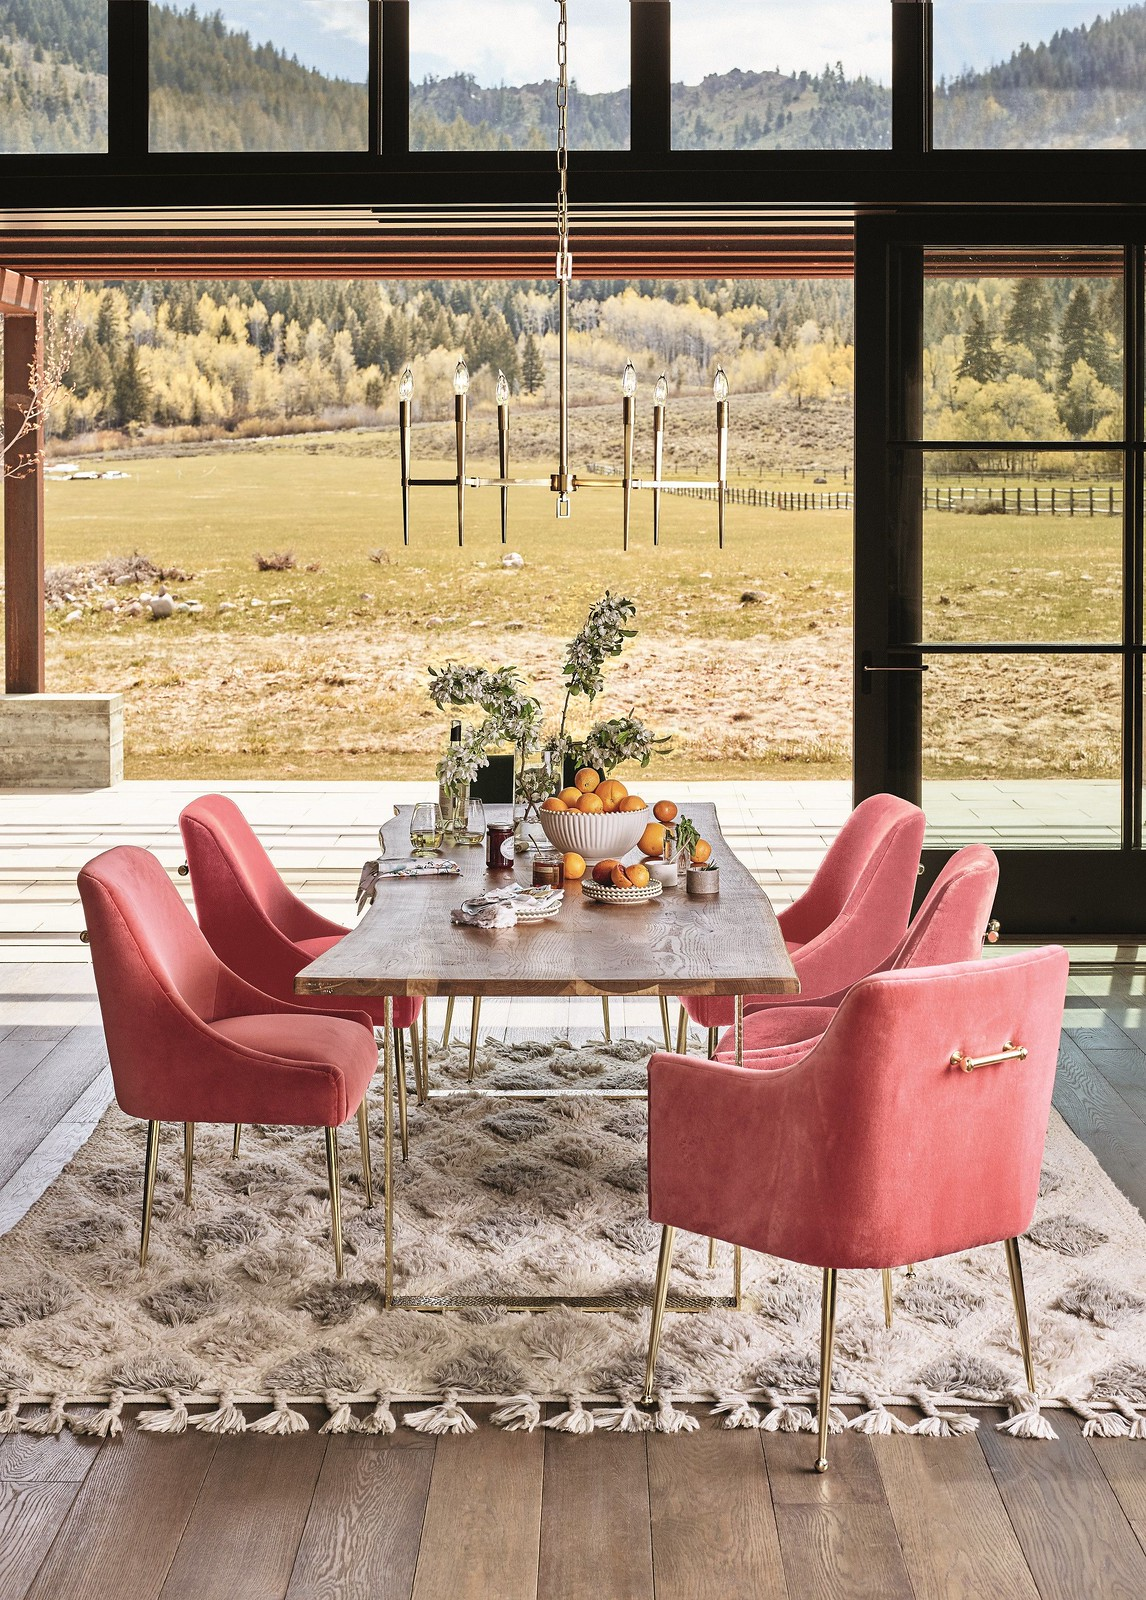 Anthropologie Velvet Elowen Chair Armchair | Eclectic Rustic Dining Room | Velvet Dining Room Chairs | Velvet Dining Chairs | Pink Gold Velvet Chairs | Dining Room Inspiration | Dining Room Ideas | Simple Dining Room Lighting | Dining Room Decor